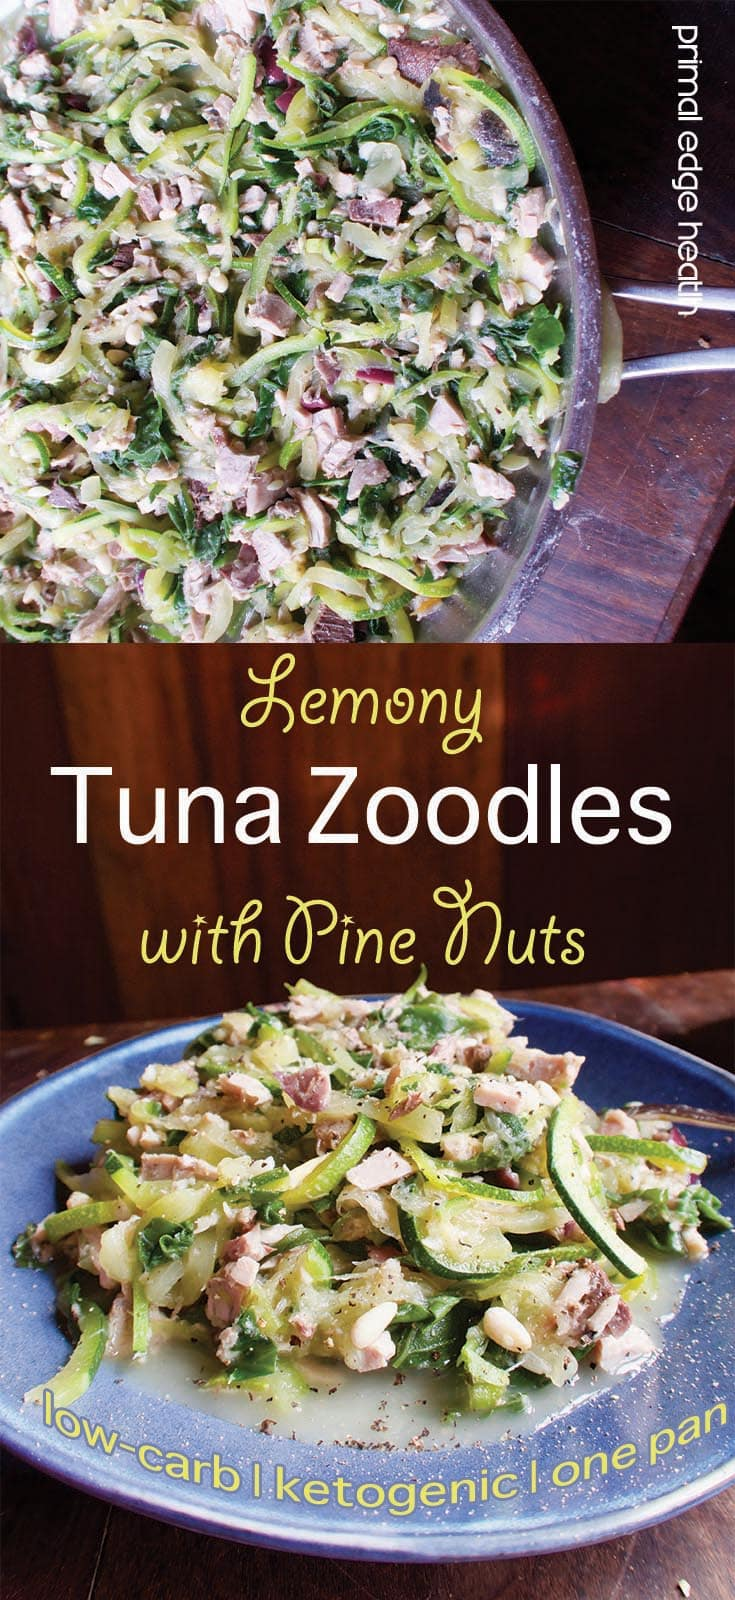 Lemony Tuna Zoodles with Pine Nuts